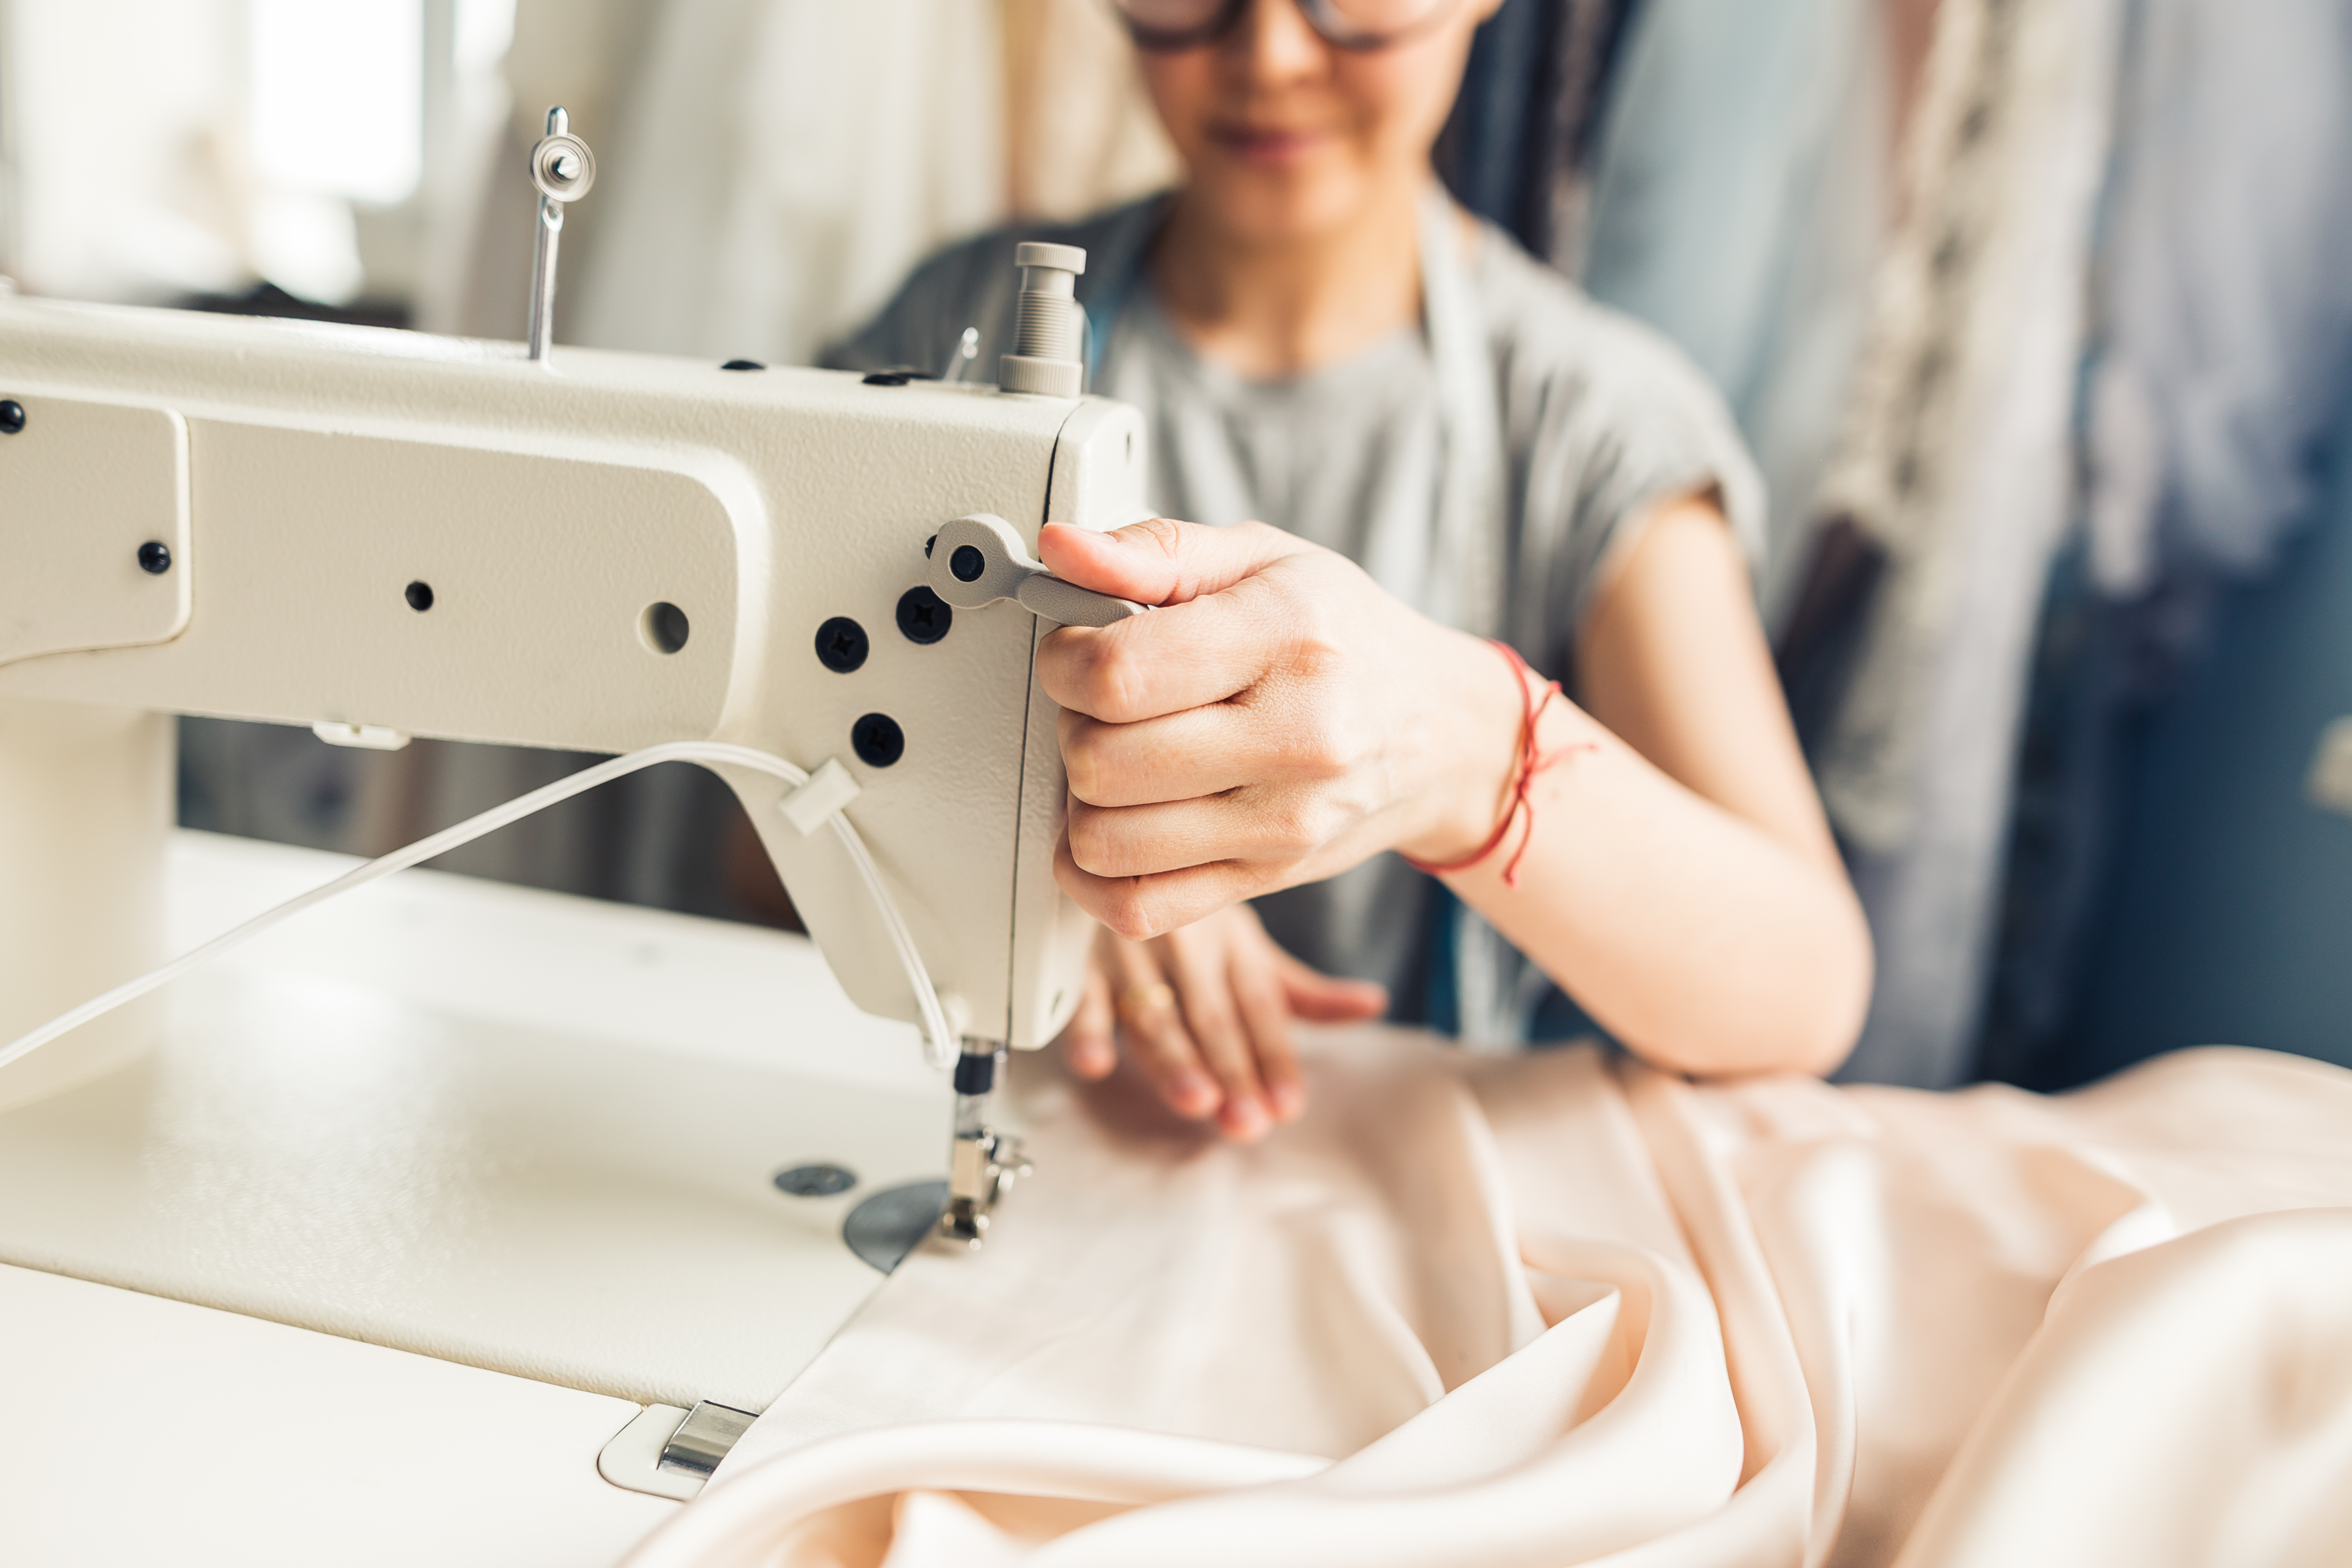 An out-of-focus figure works at an in-focus sewing machine